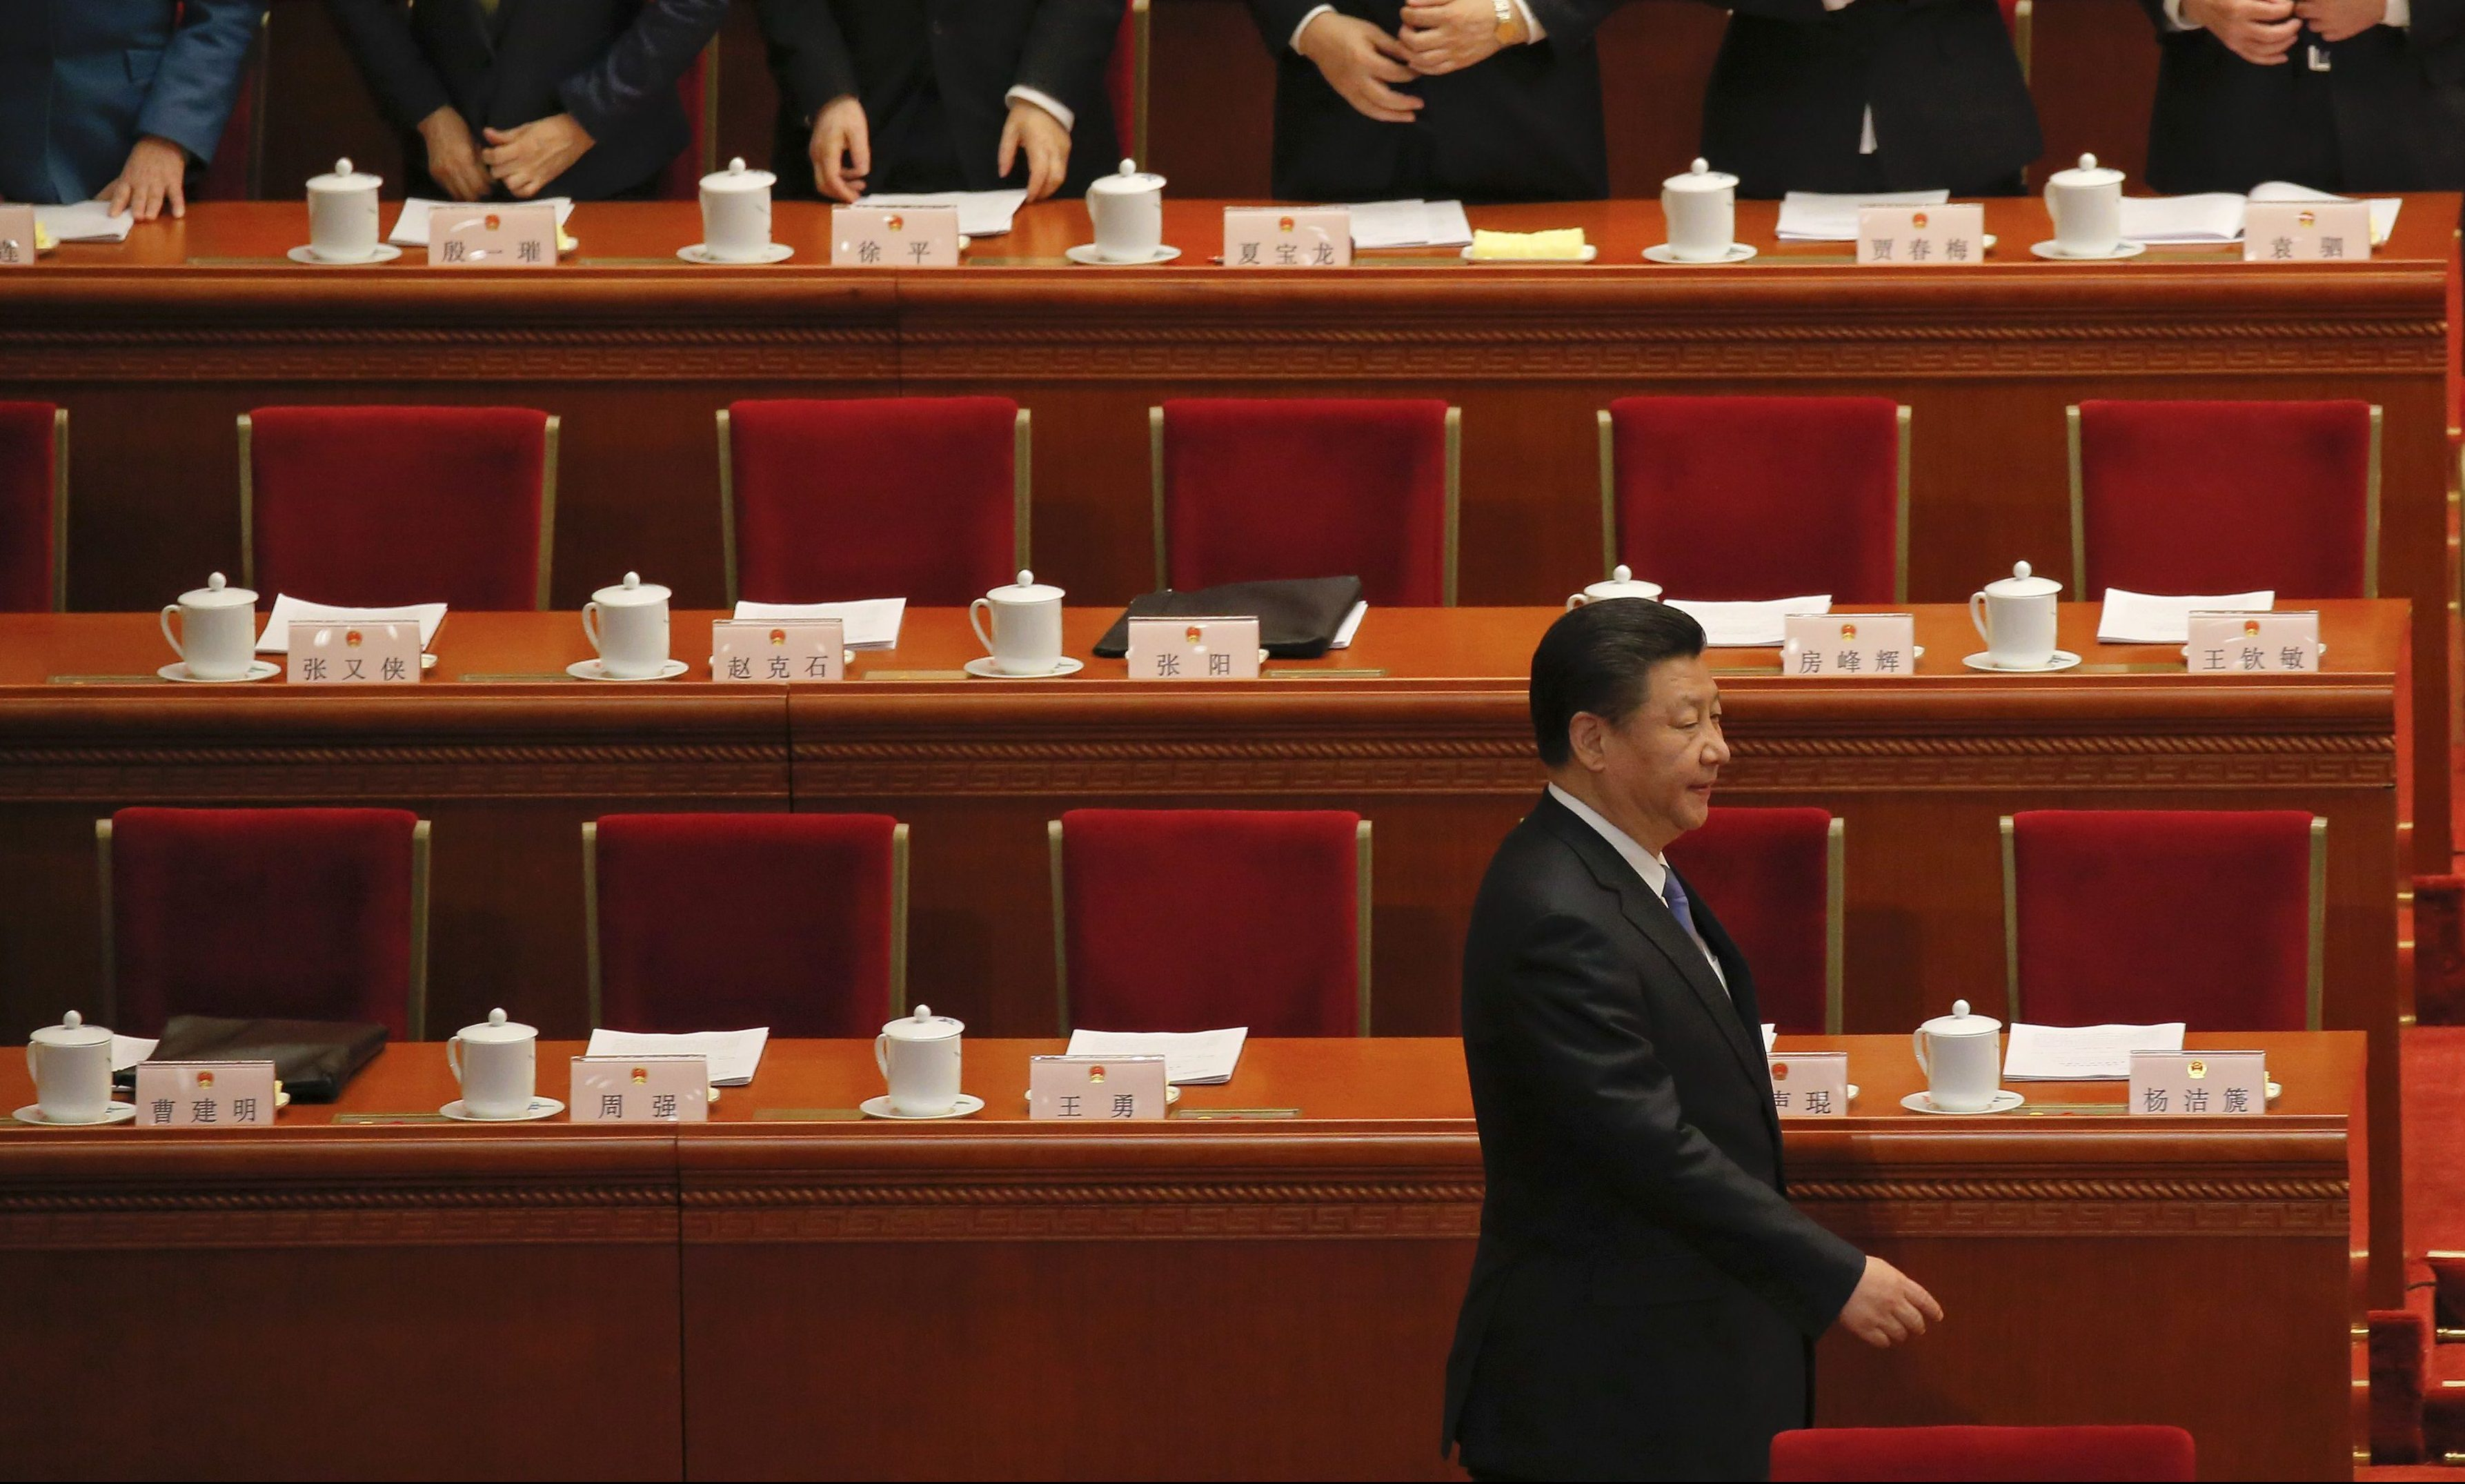 China's President Xi Jinping arrives for the second plenary session of the National People's Congress (NPC) at the Great Hall of the People in Beijing, China, March 9, 2016.